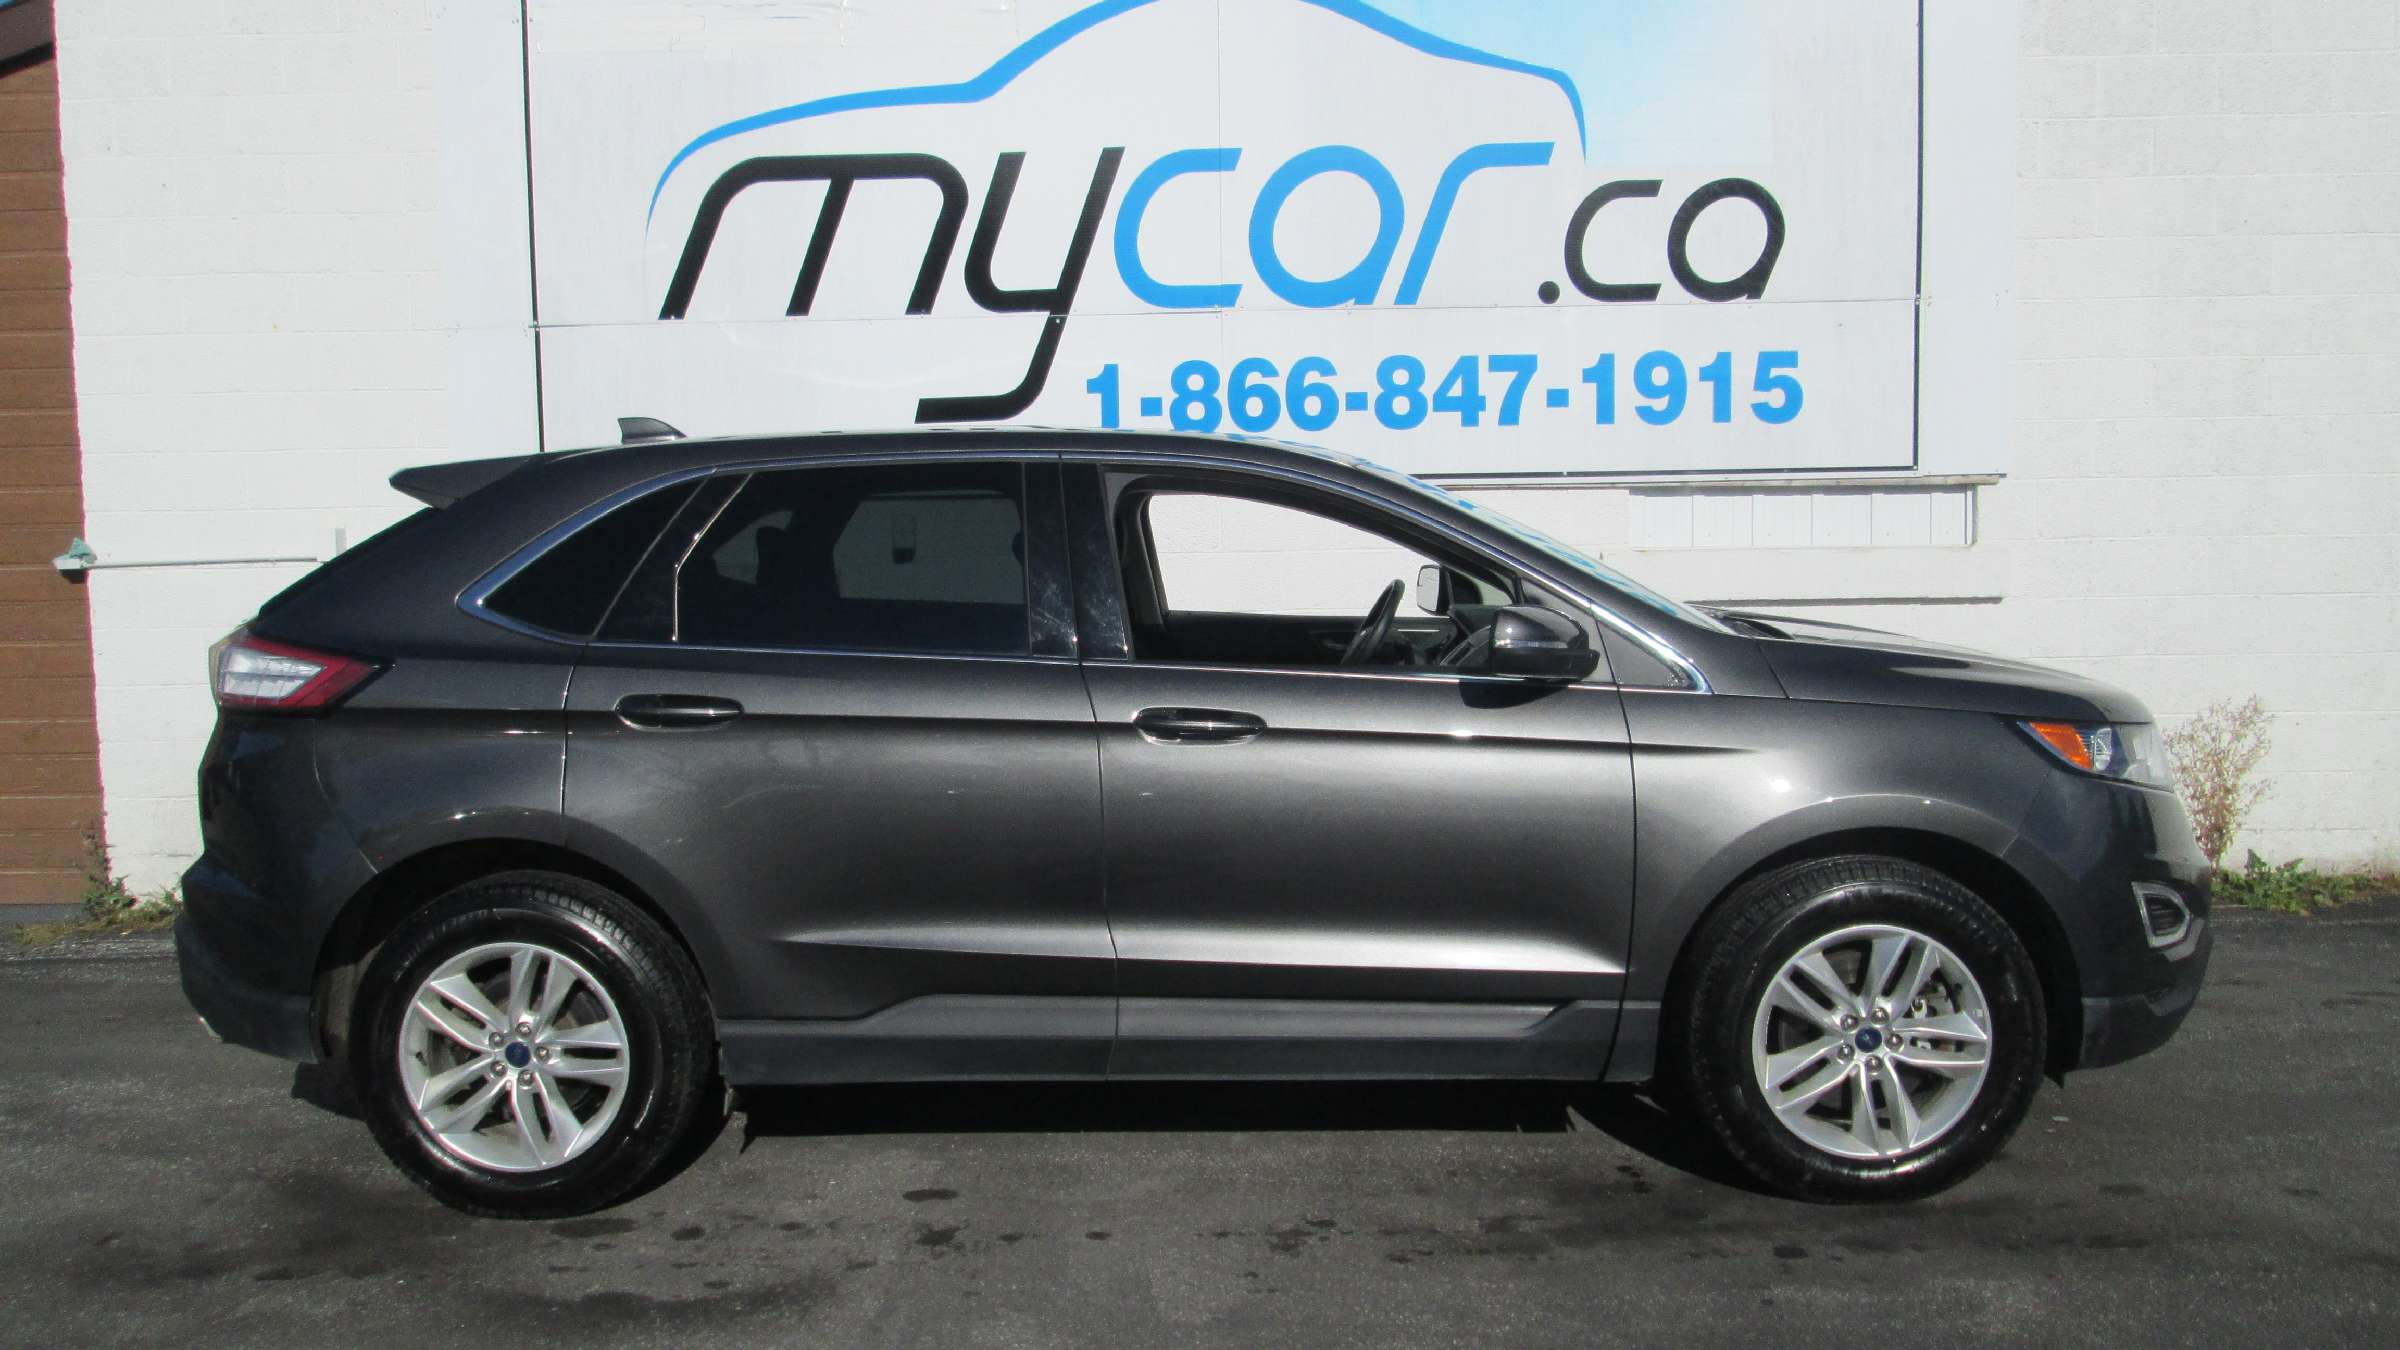 2017 Ford Edge SEL (Stk: 171341) in North Bay - Image 2 of 11